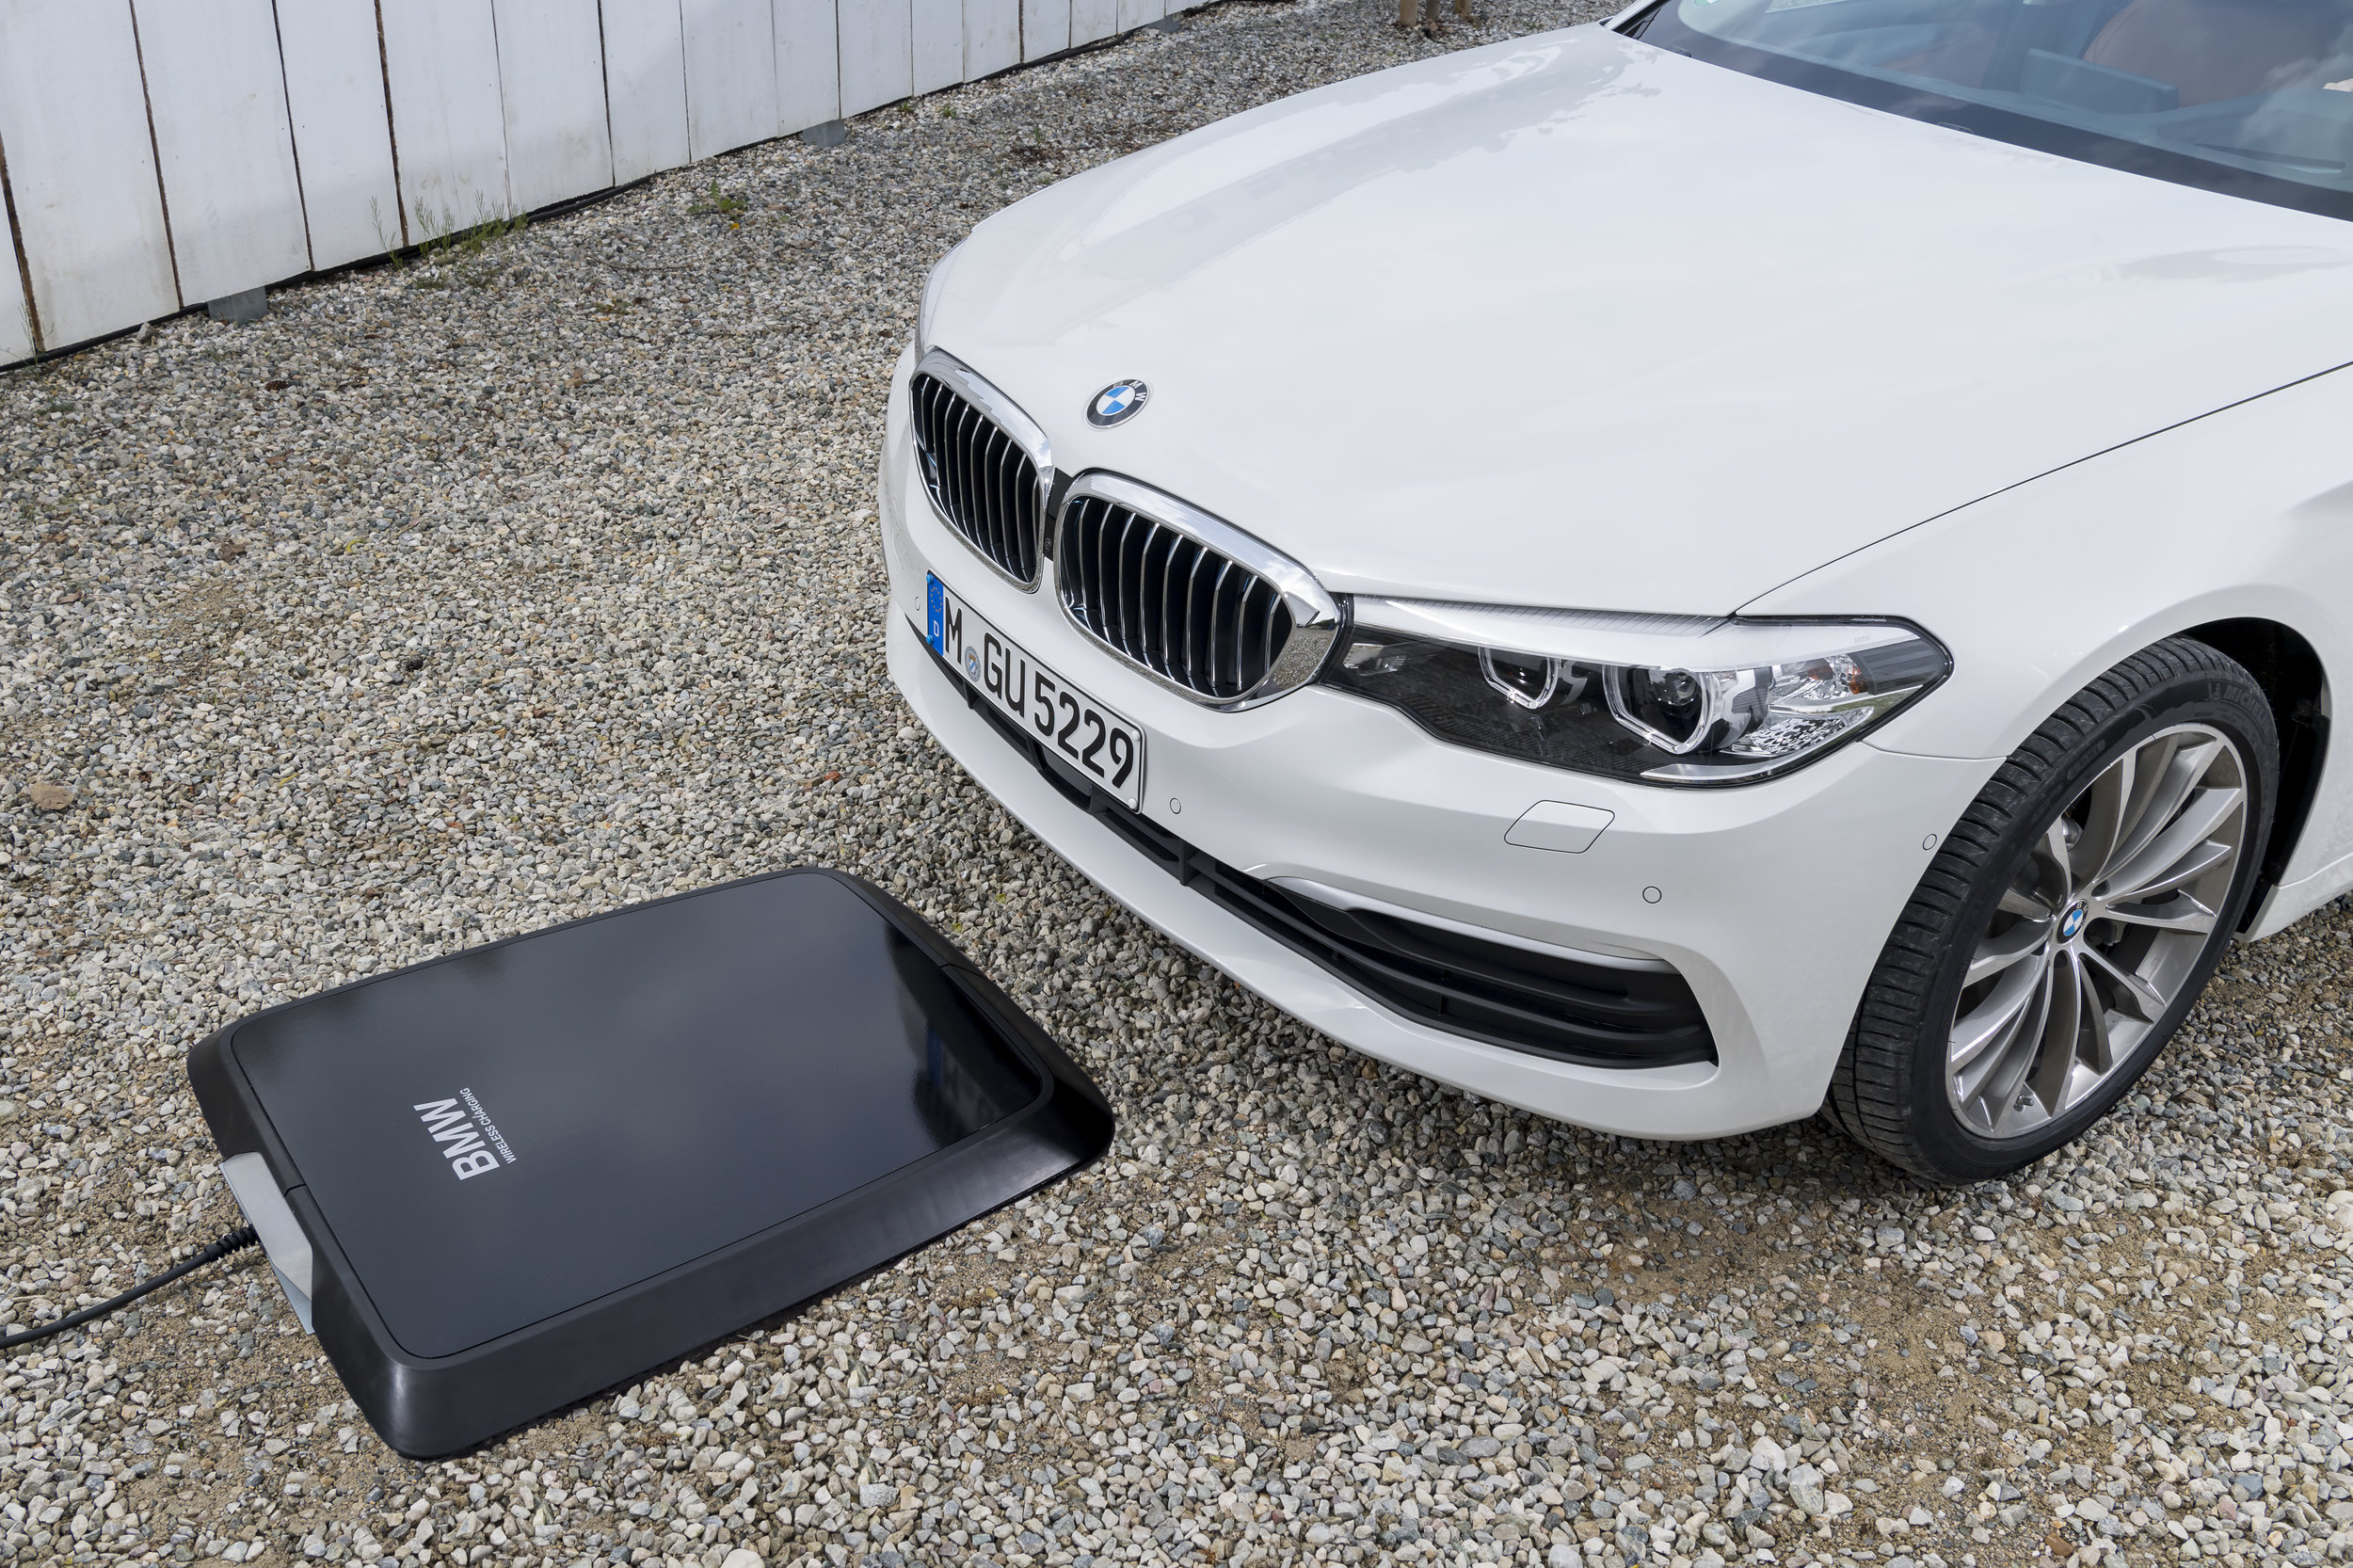 The BMW GroundPad and 530e